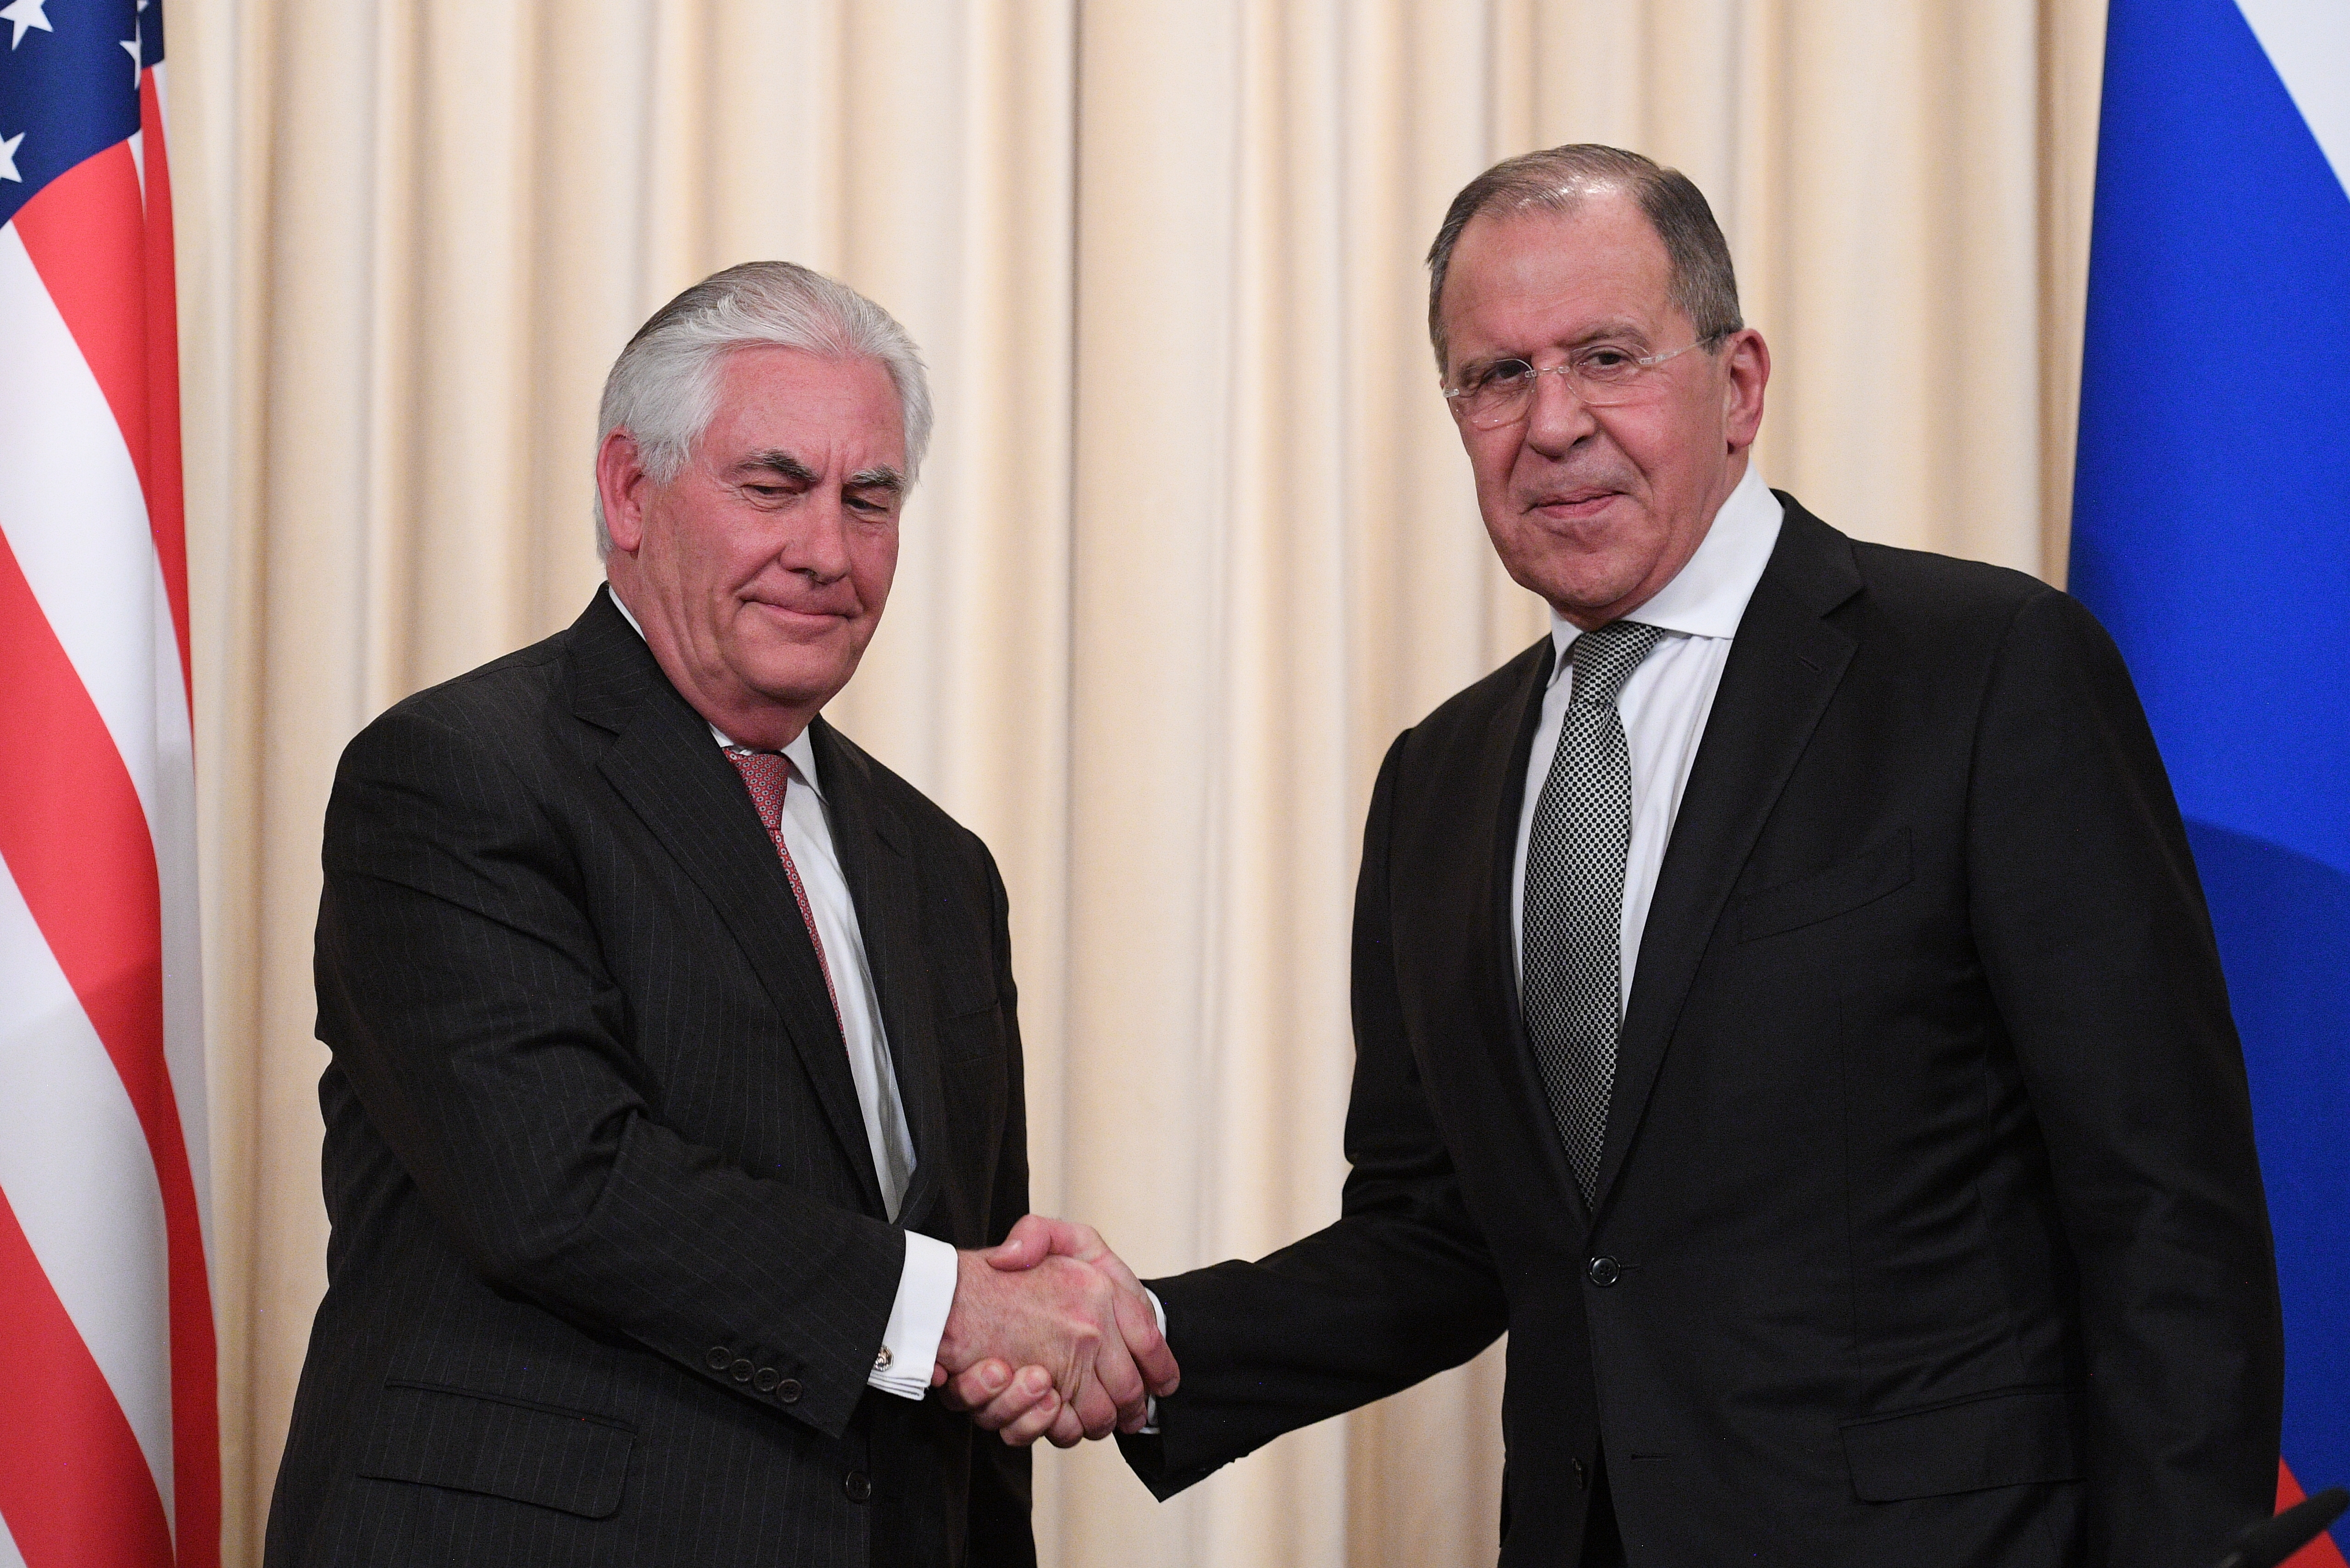 News conference by Russian Foreign Minister Sergei Lavrov and U.S. Secretary of State Rex Tillerson